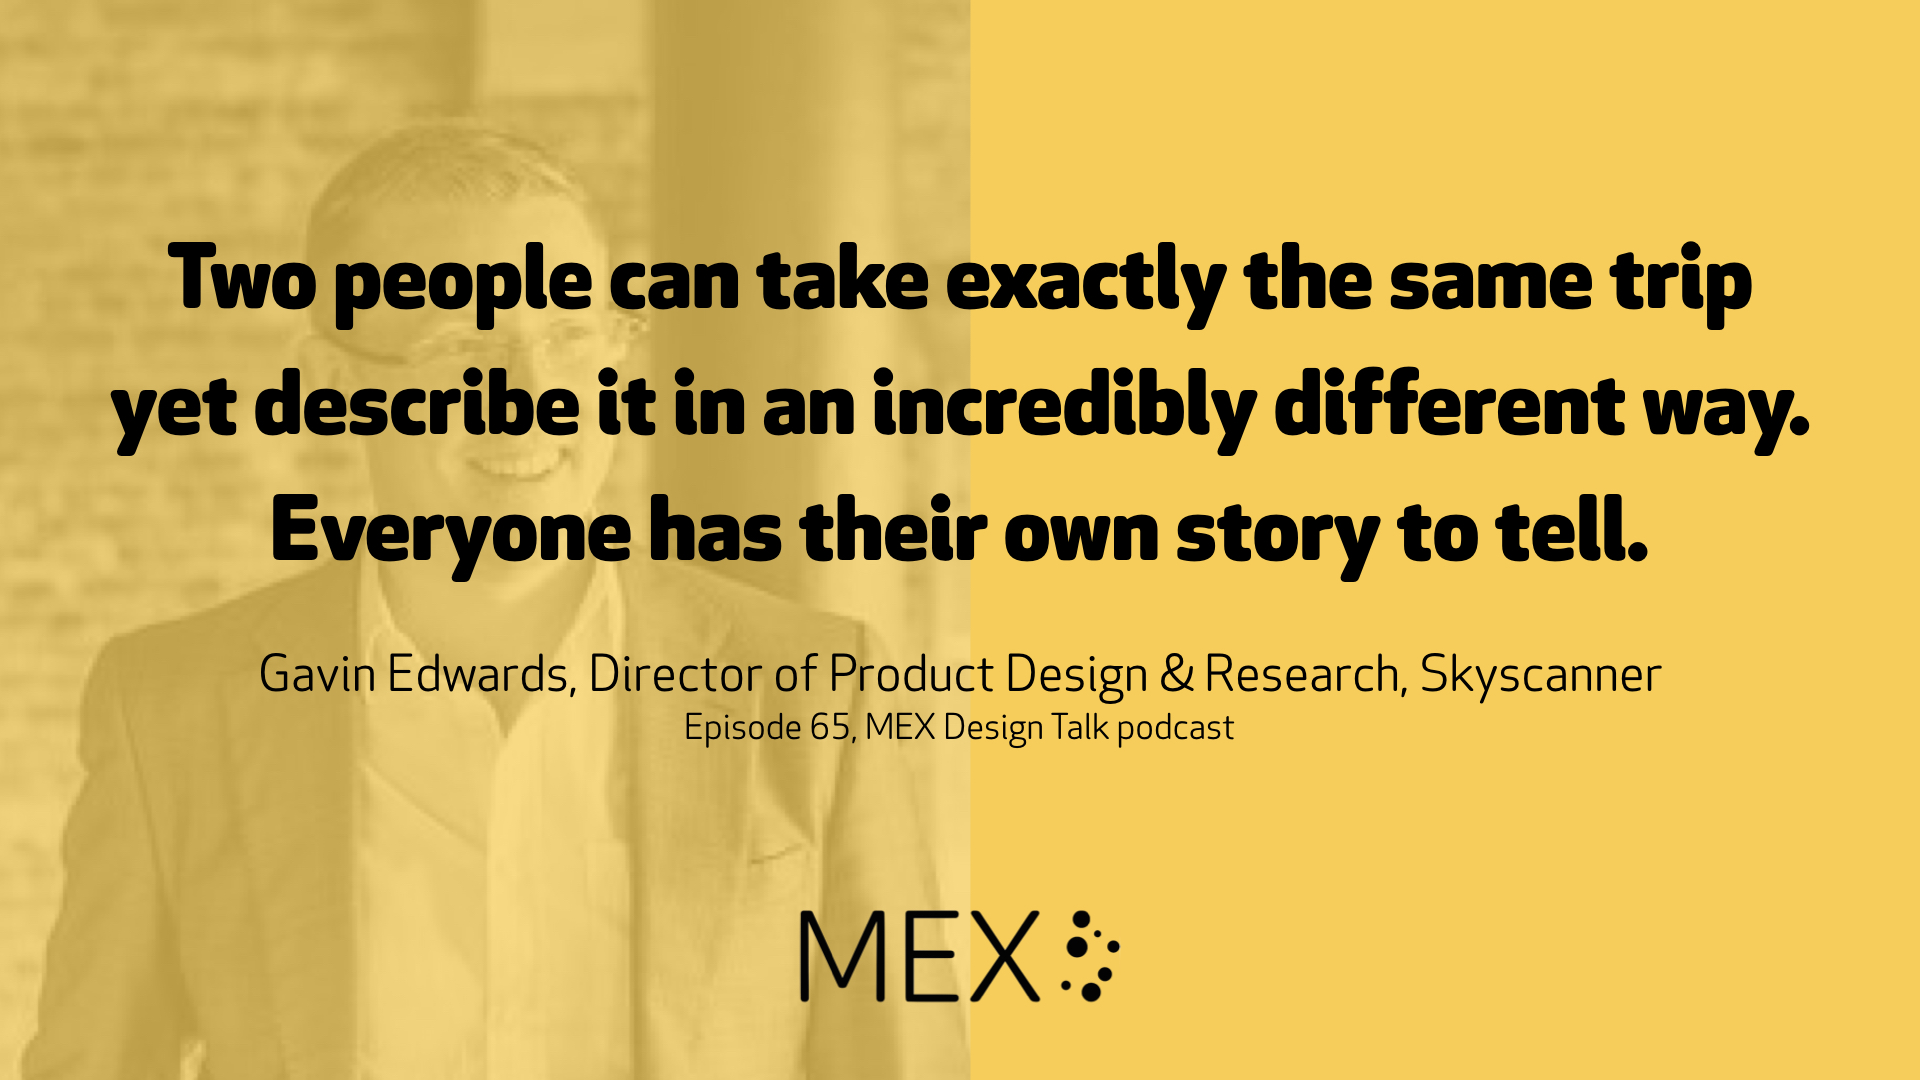 Two people can take exactly the same trip yet describe it in an incredibly different way. Everyone has their own story to tell. Gavin Edwards, Director of Product Design & Research, Skyscanner Episode 65, MEX Design Talk podcast